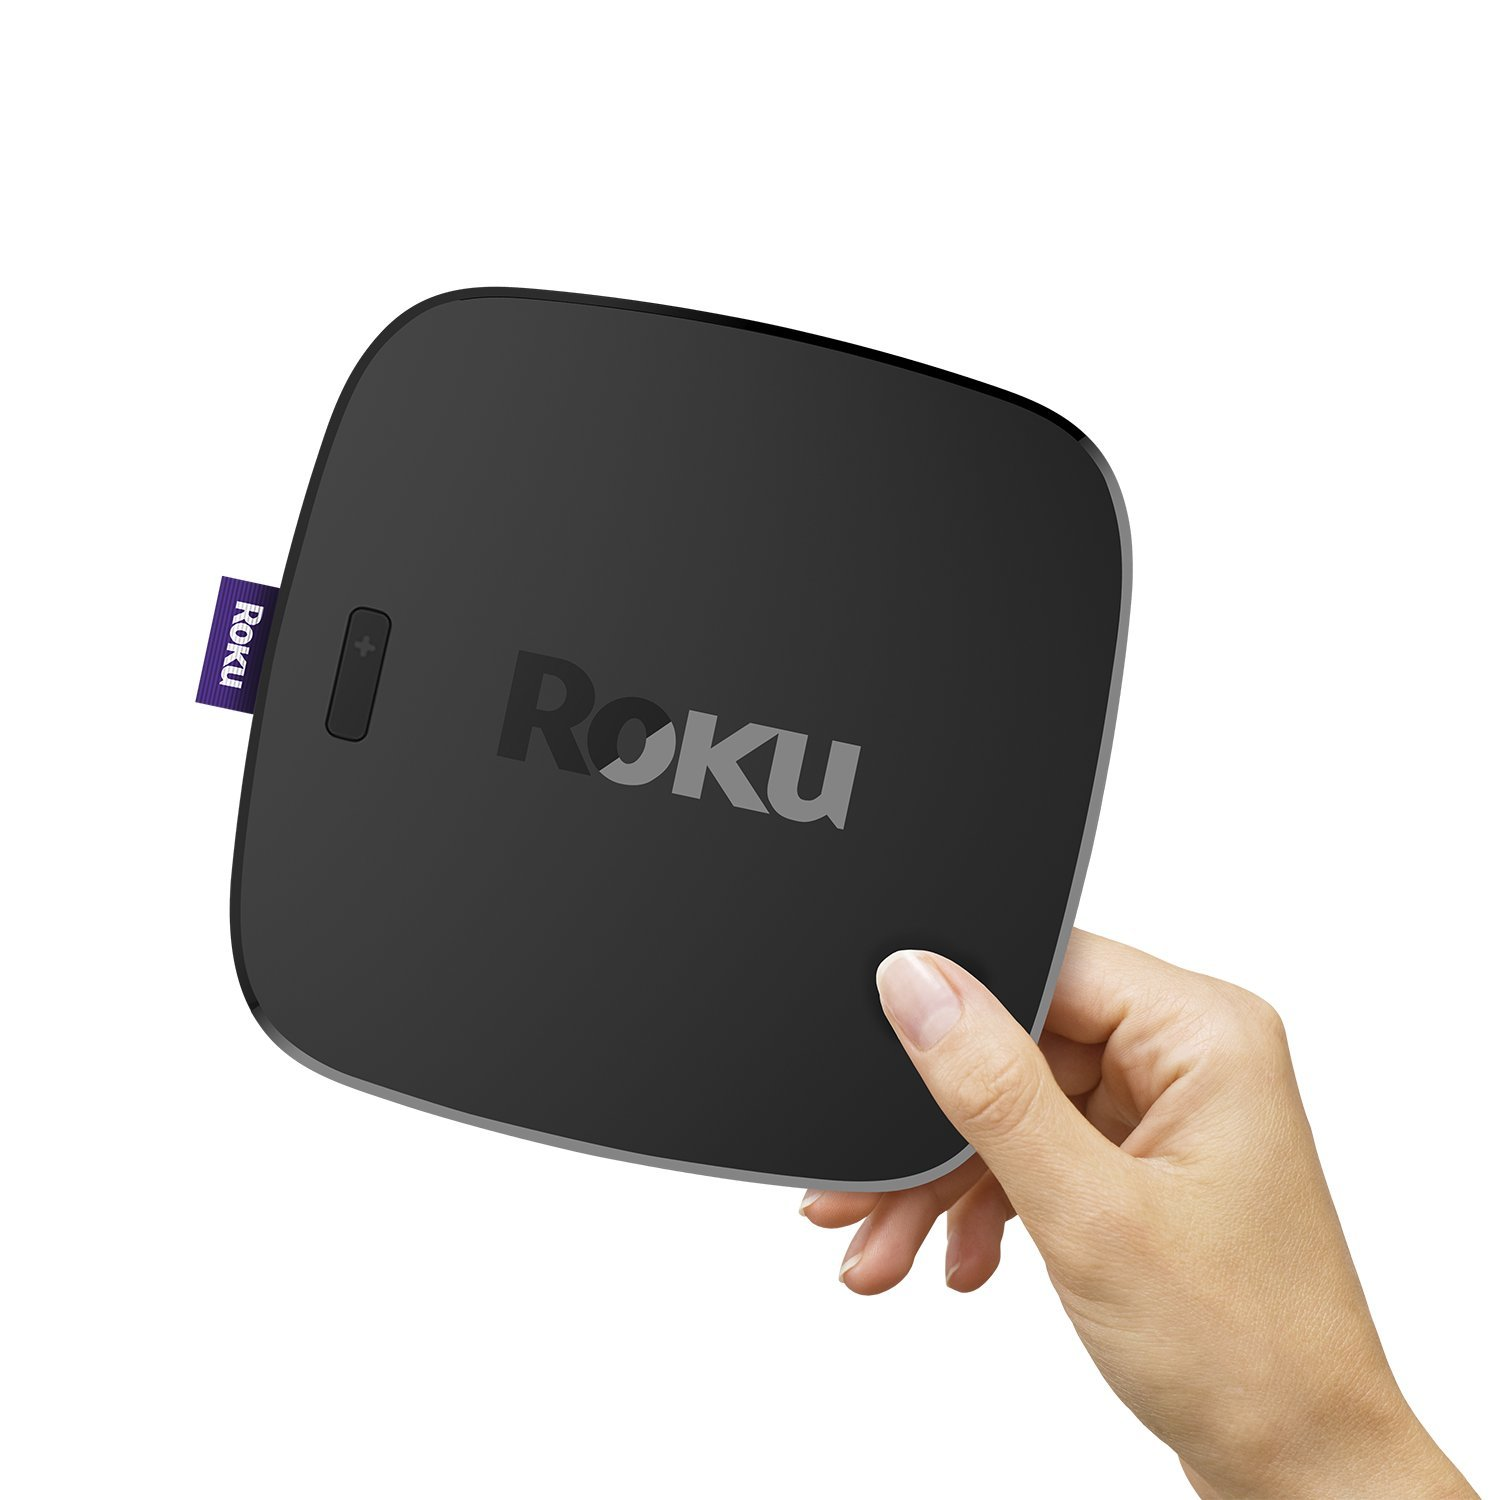 Roku Ultra | 4K/HDR/HD Streaming Player with Enhanced Remote (Voice, Remote Finder, Headphone Jack, TV Power and Volume), Ethernet, MicroSD and USB by Roku (Image #3)